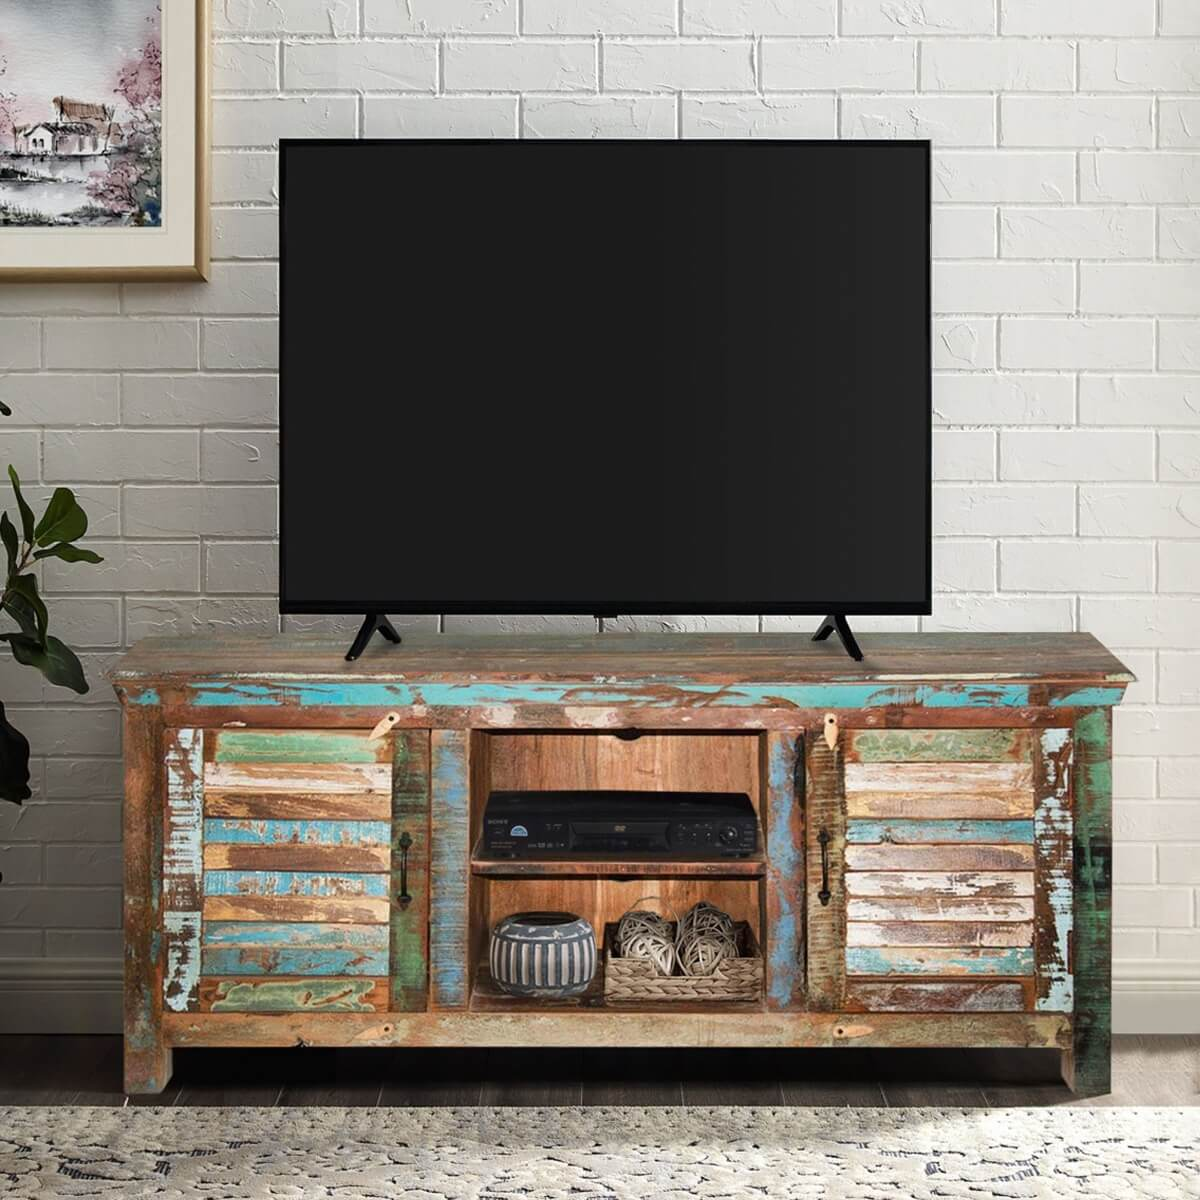 fenwick rustic reclaimed wood shutter door tv stand media console. Black Bedroom Furniture Sets. Home Design Ideas